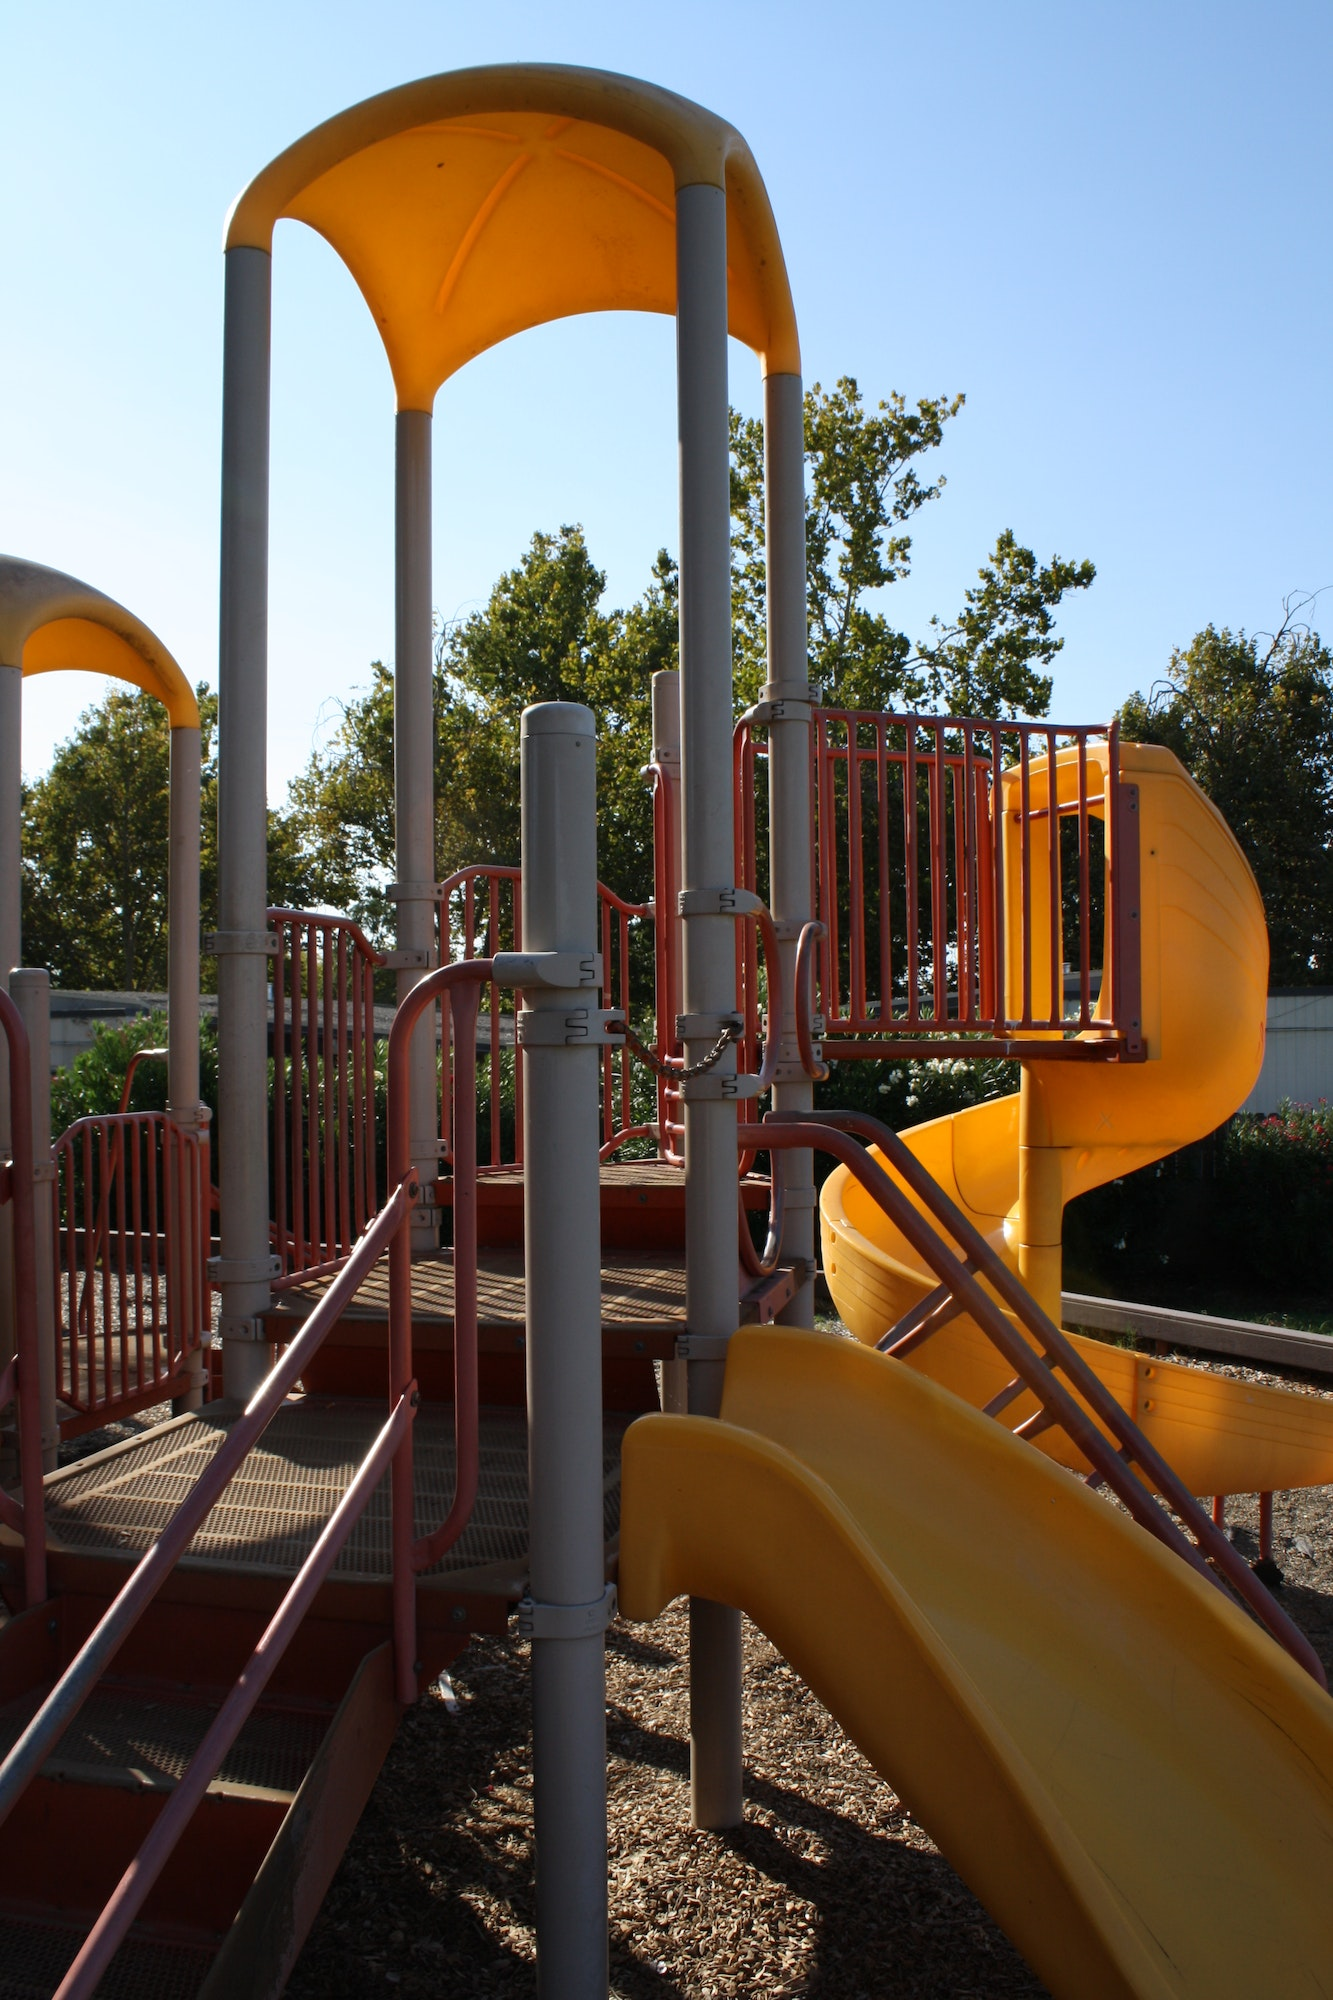 Capehart Youth Center Park